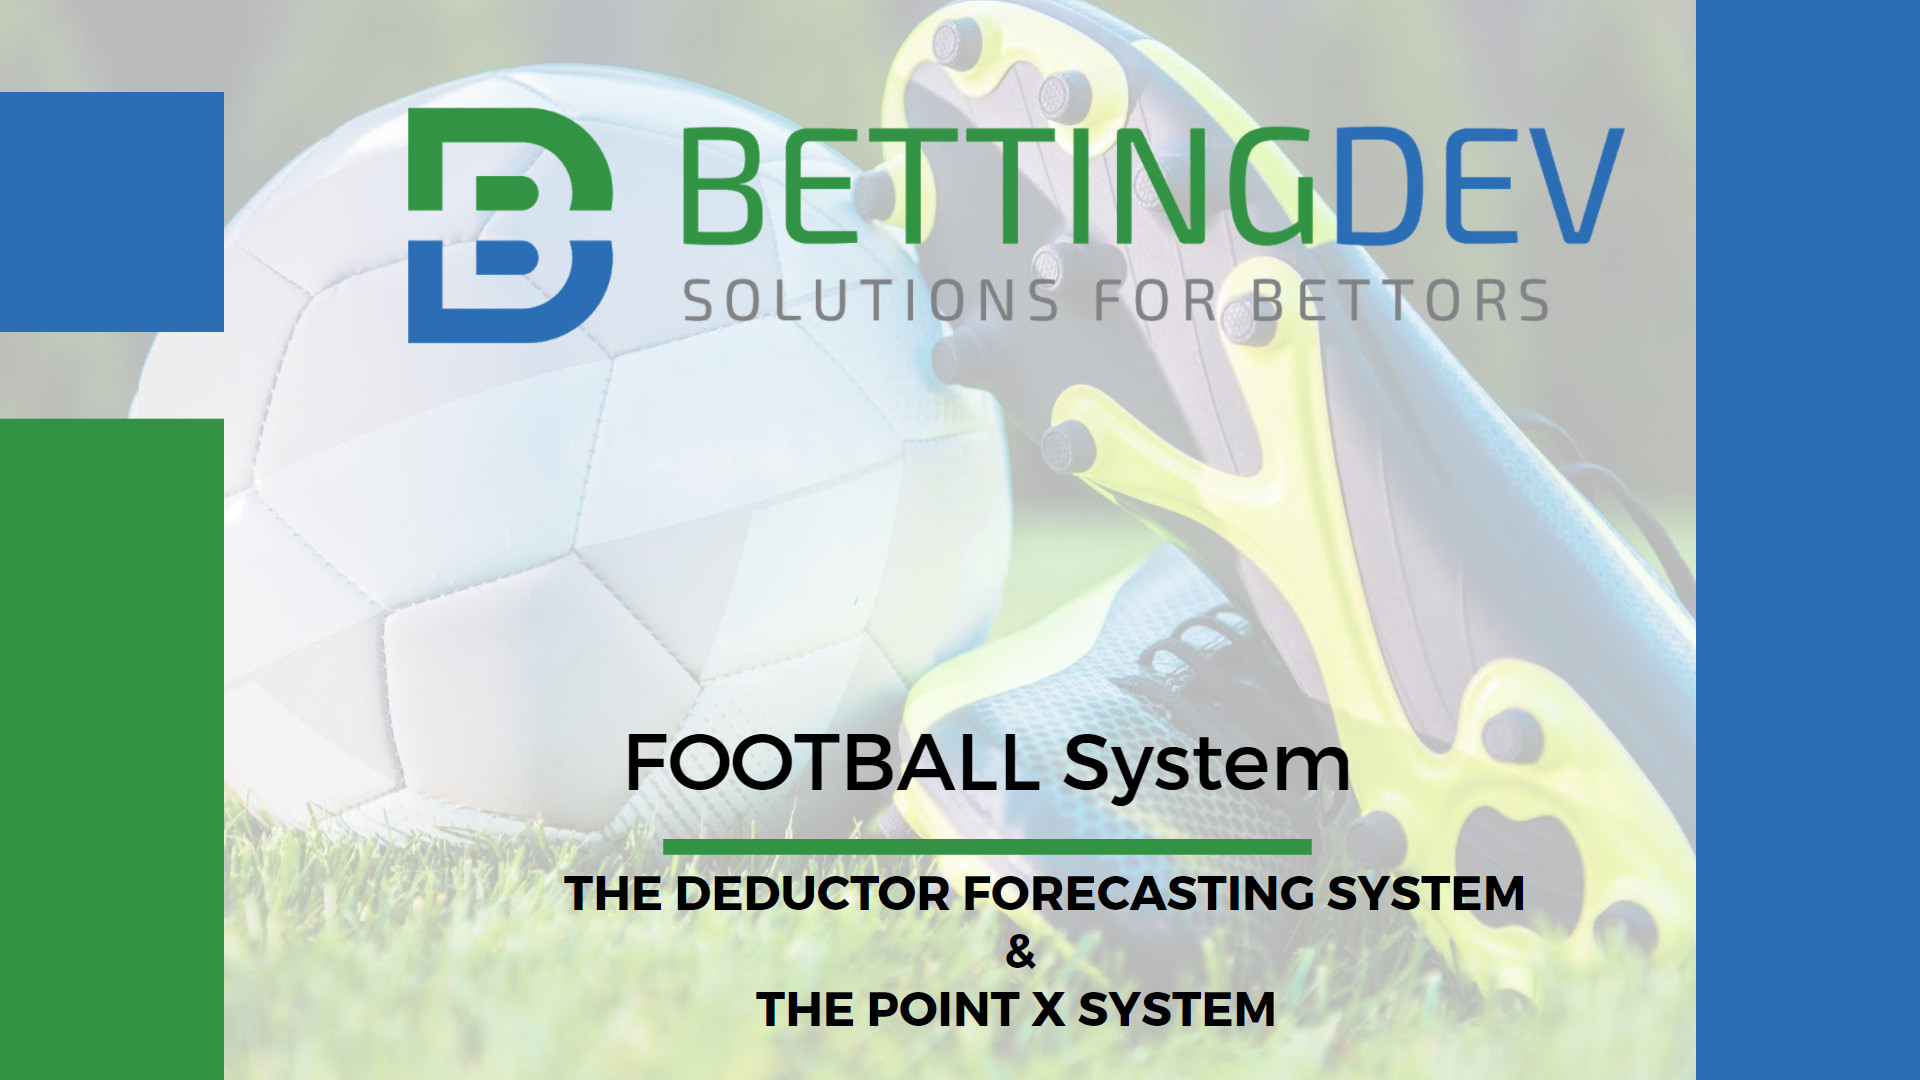 Deductor Forecasting System & The Point X System